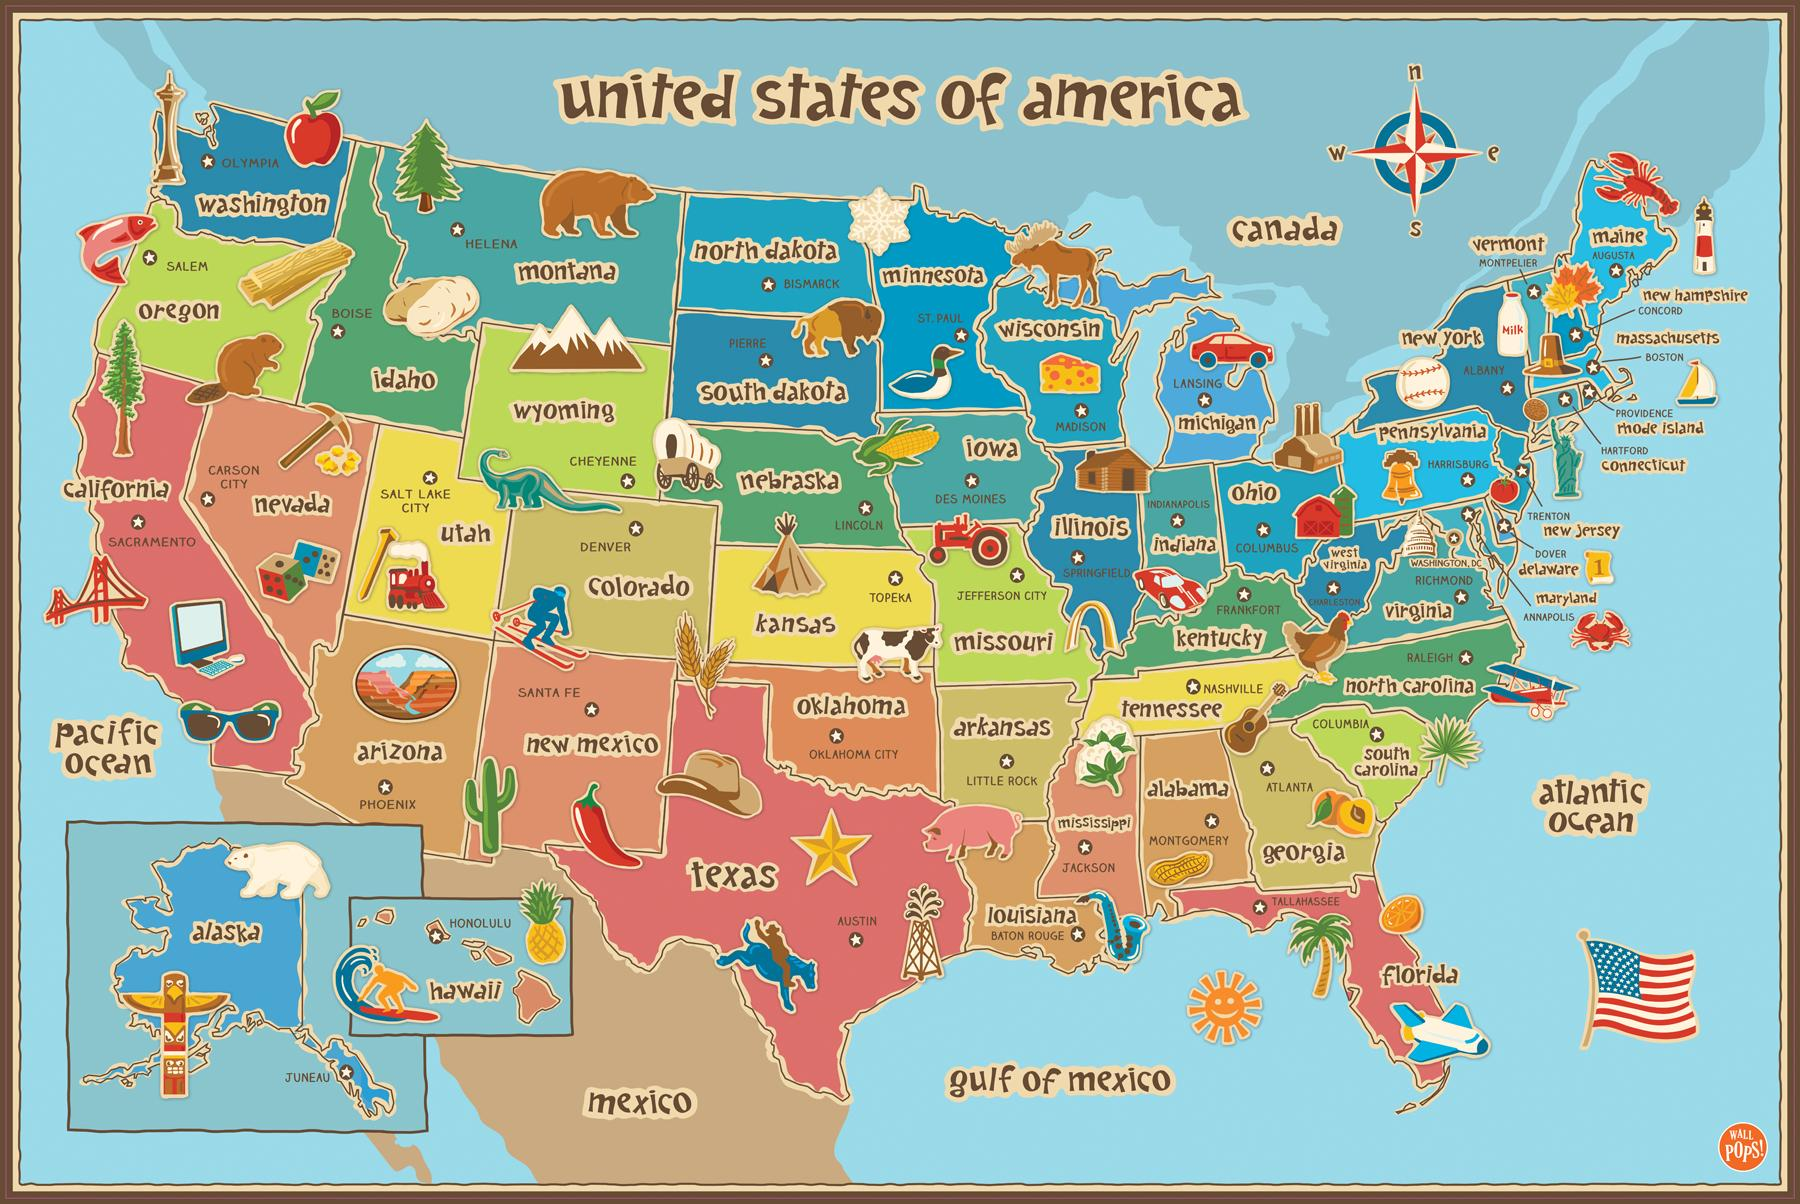 Wall Pops WPE0623 Kids USA Dry Erase Map Decal Wall Decals ... Kids Map Of The Usa on large map of usa, roadmap of the usa, map of usa states, physical map of usa, postcard of the usa, parts of the usa, rivers of the usa, full map of usa, climate of the usa, united states maps usa, travel the usa, mal of the usa, map of time zones in usa, driving road map usa, flag of the usa, blank map of usa, states of the usa, outline of the usa, map of east coast usa, atlas of the usa,